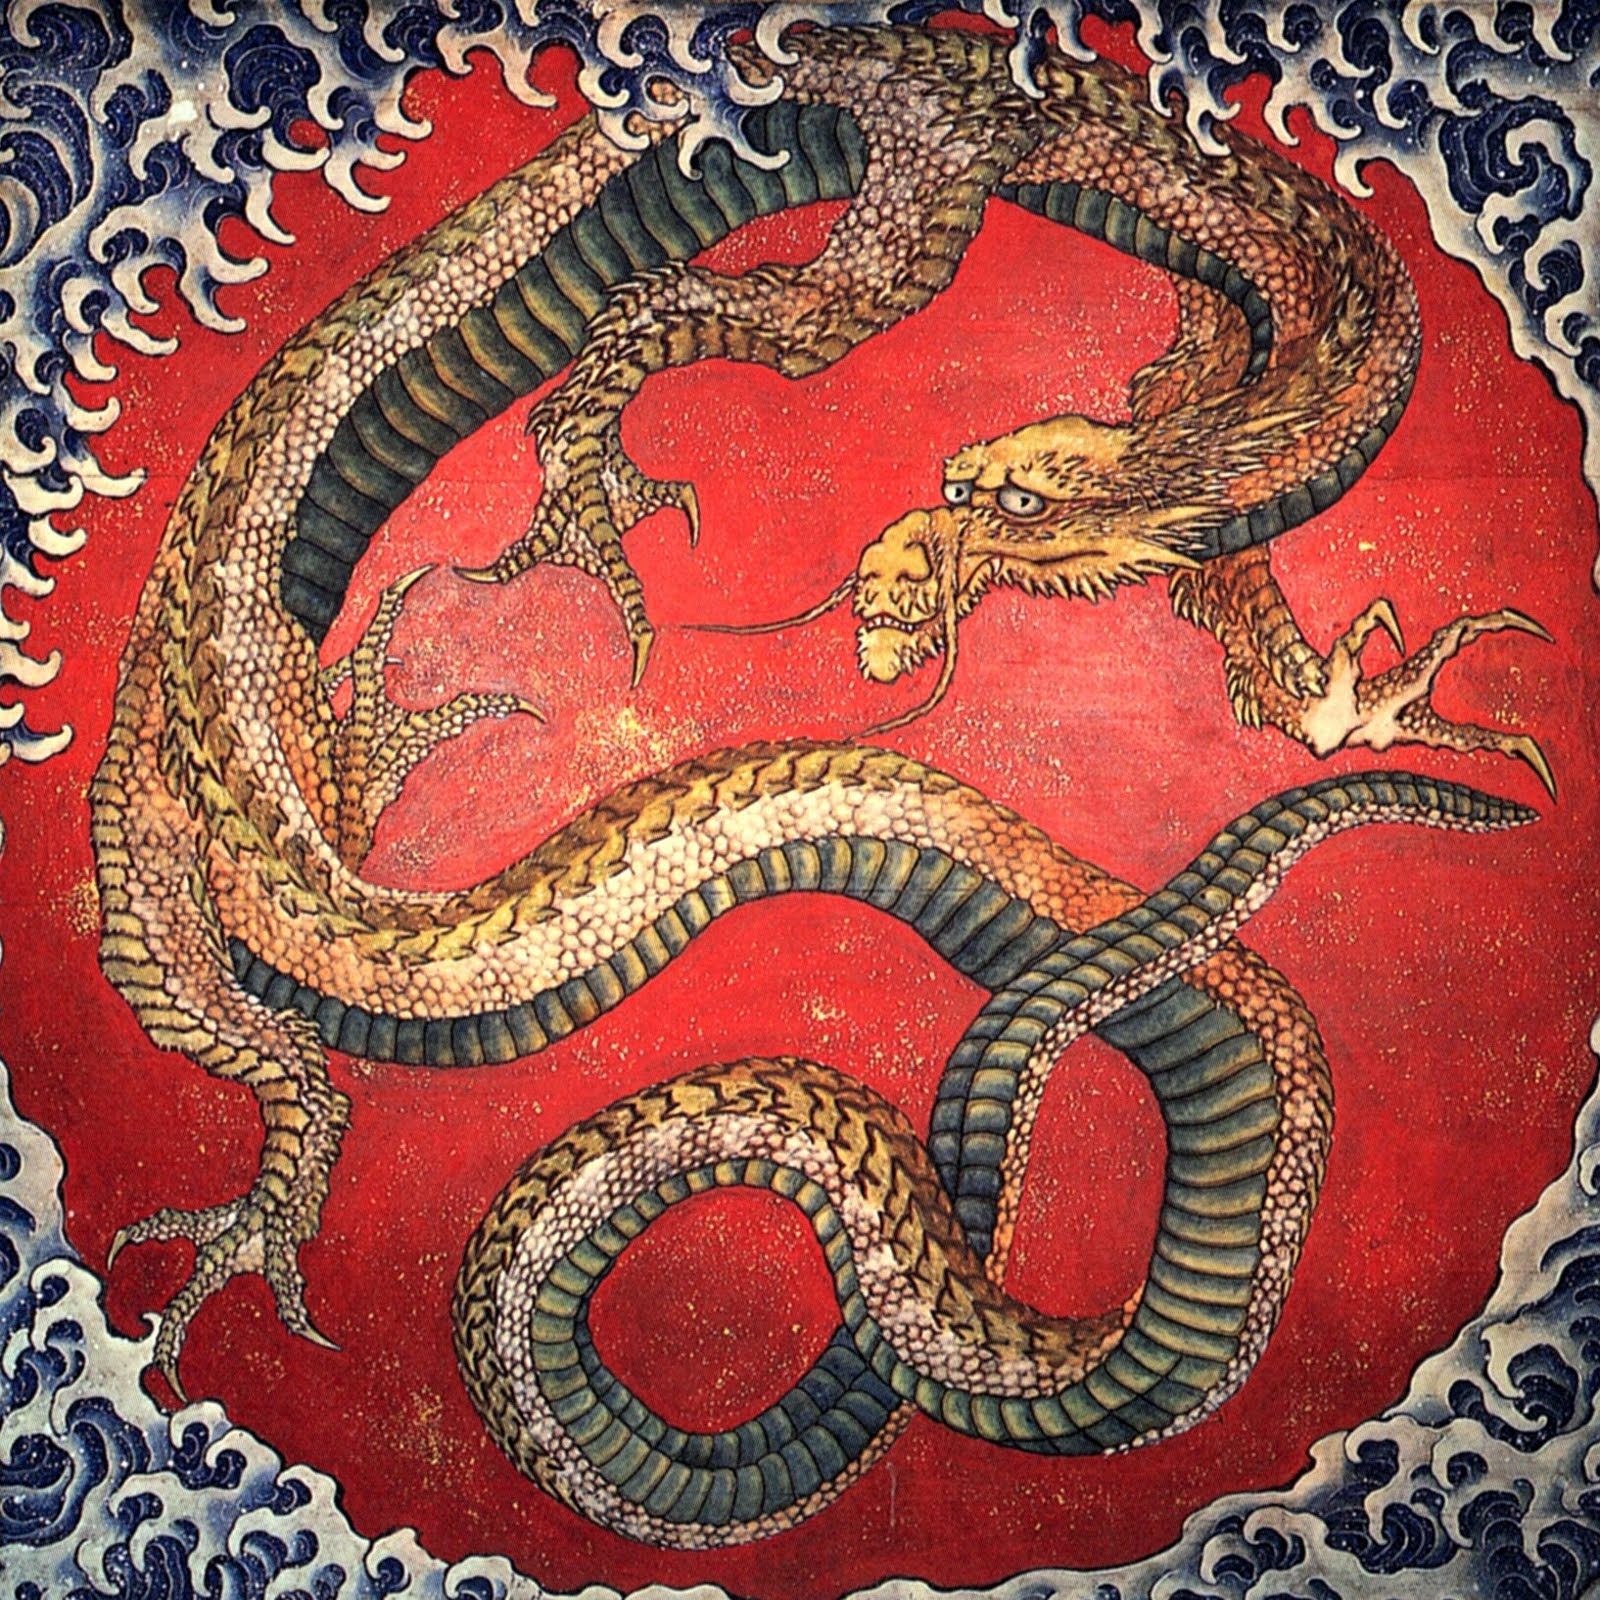 China Dragon: Visions Of Whimsy: Here Be Dragons Part 2